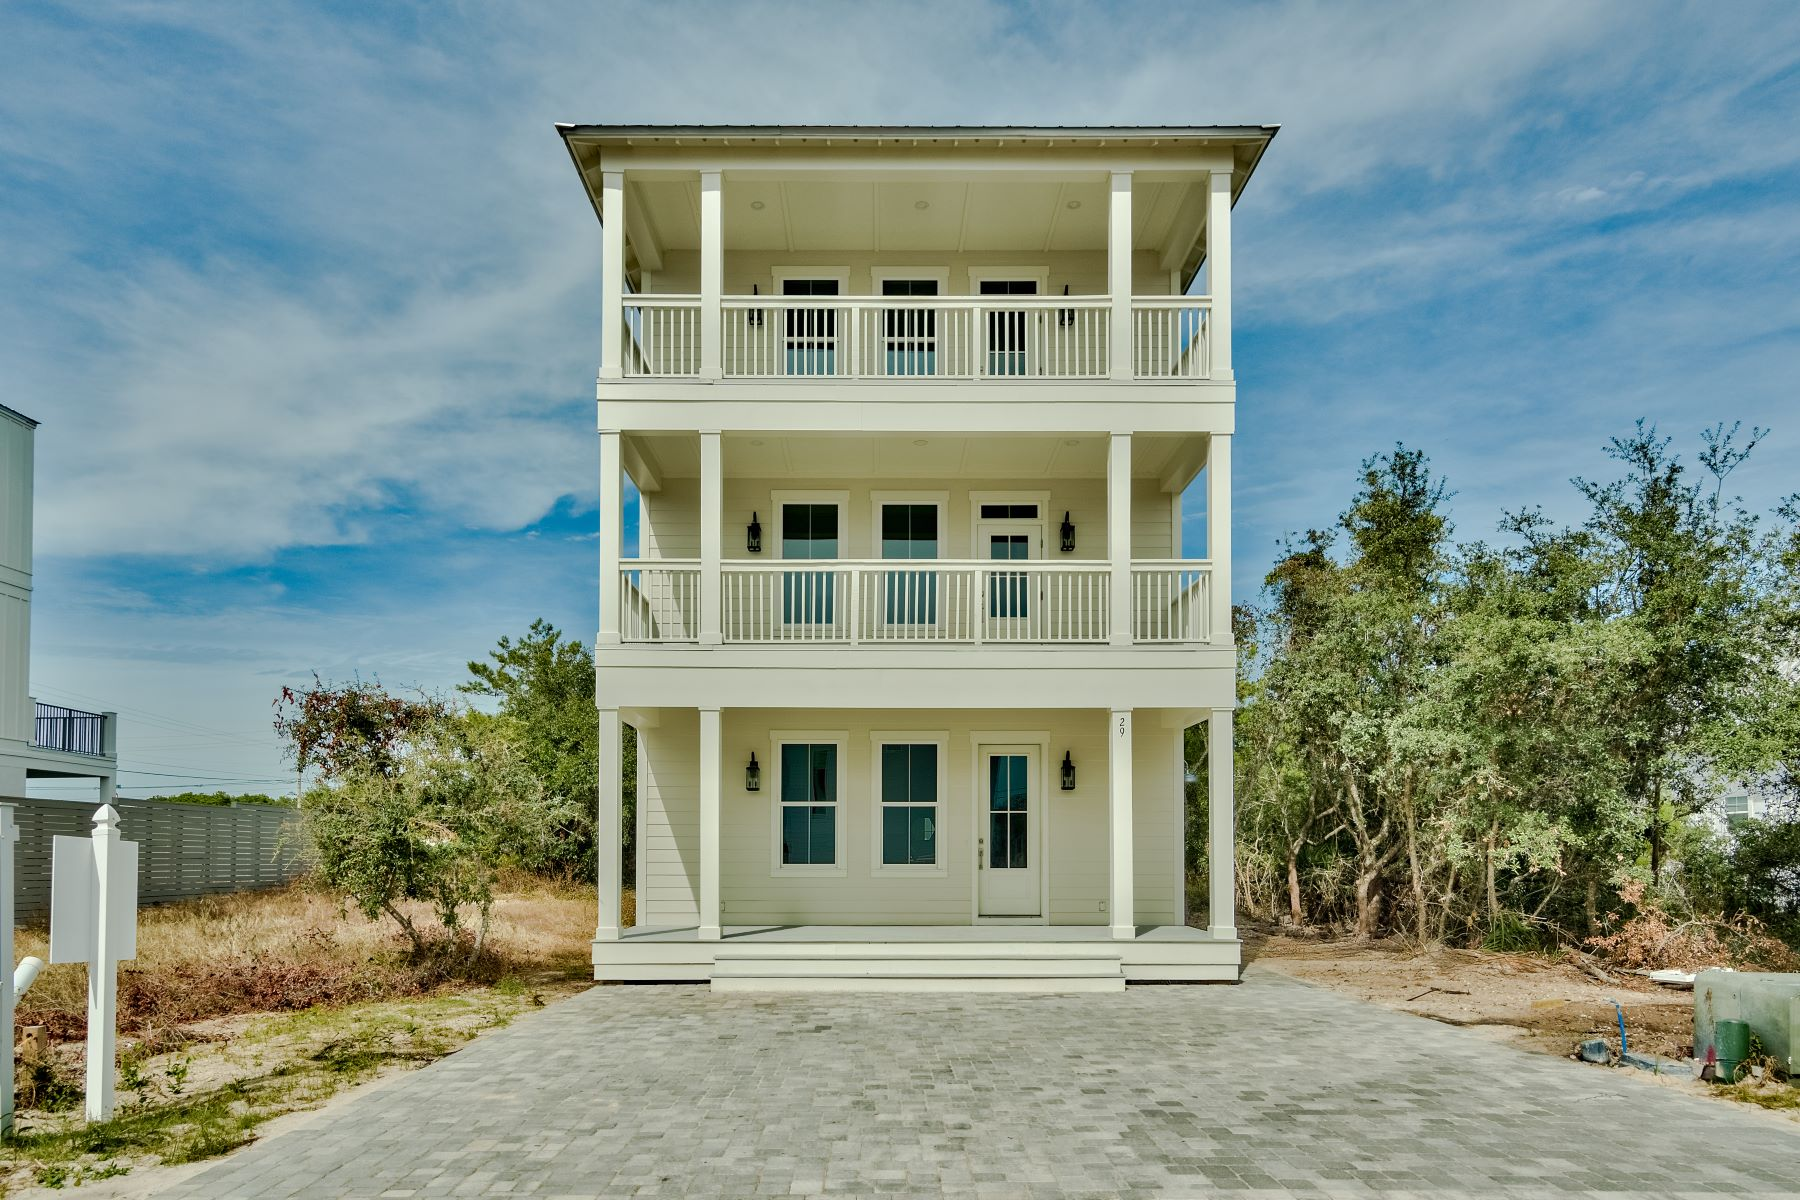 Single Family Homes for Sale at Newly Built Charming Three-Story Beach House in Inlet Beach 29 Tidewater Court Inlet Beach, Florida 32461 United States